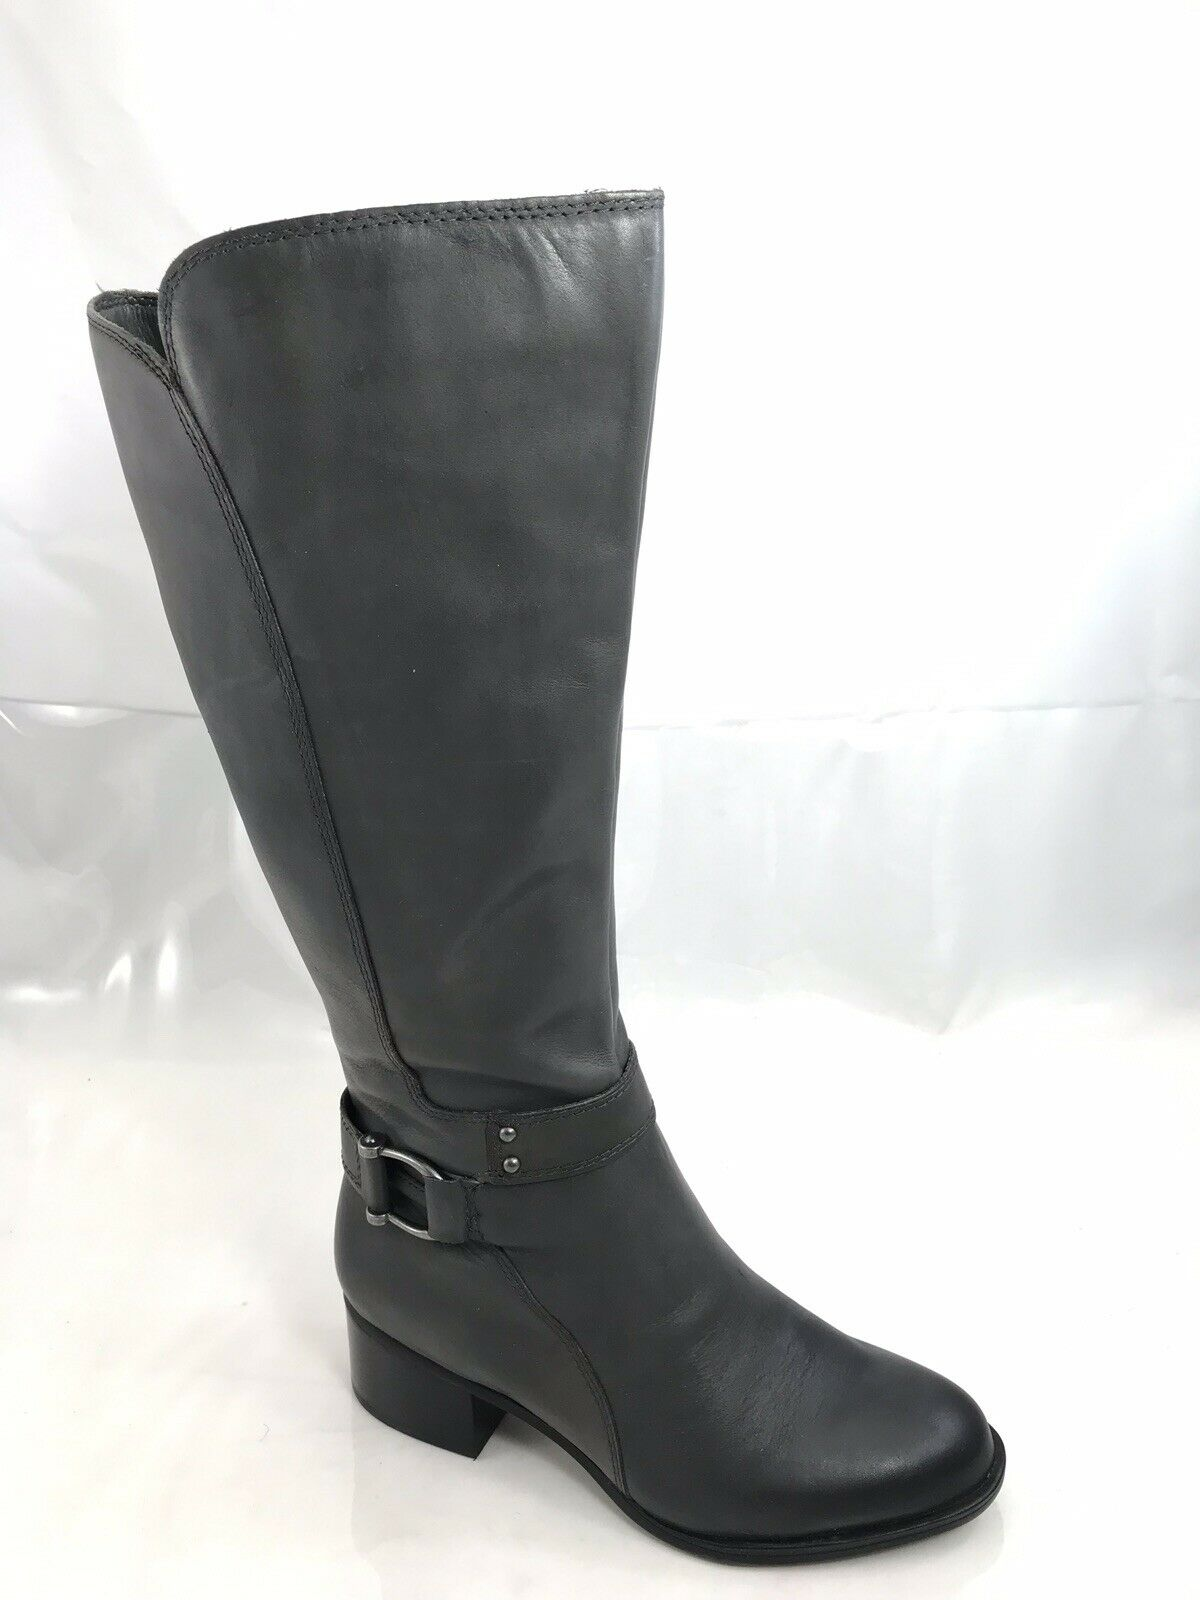 Naturalizer Dane Wide Calf Riding Stiefel damen Größe 5.5 M grau NEW